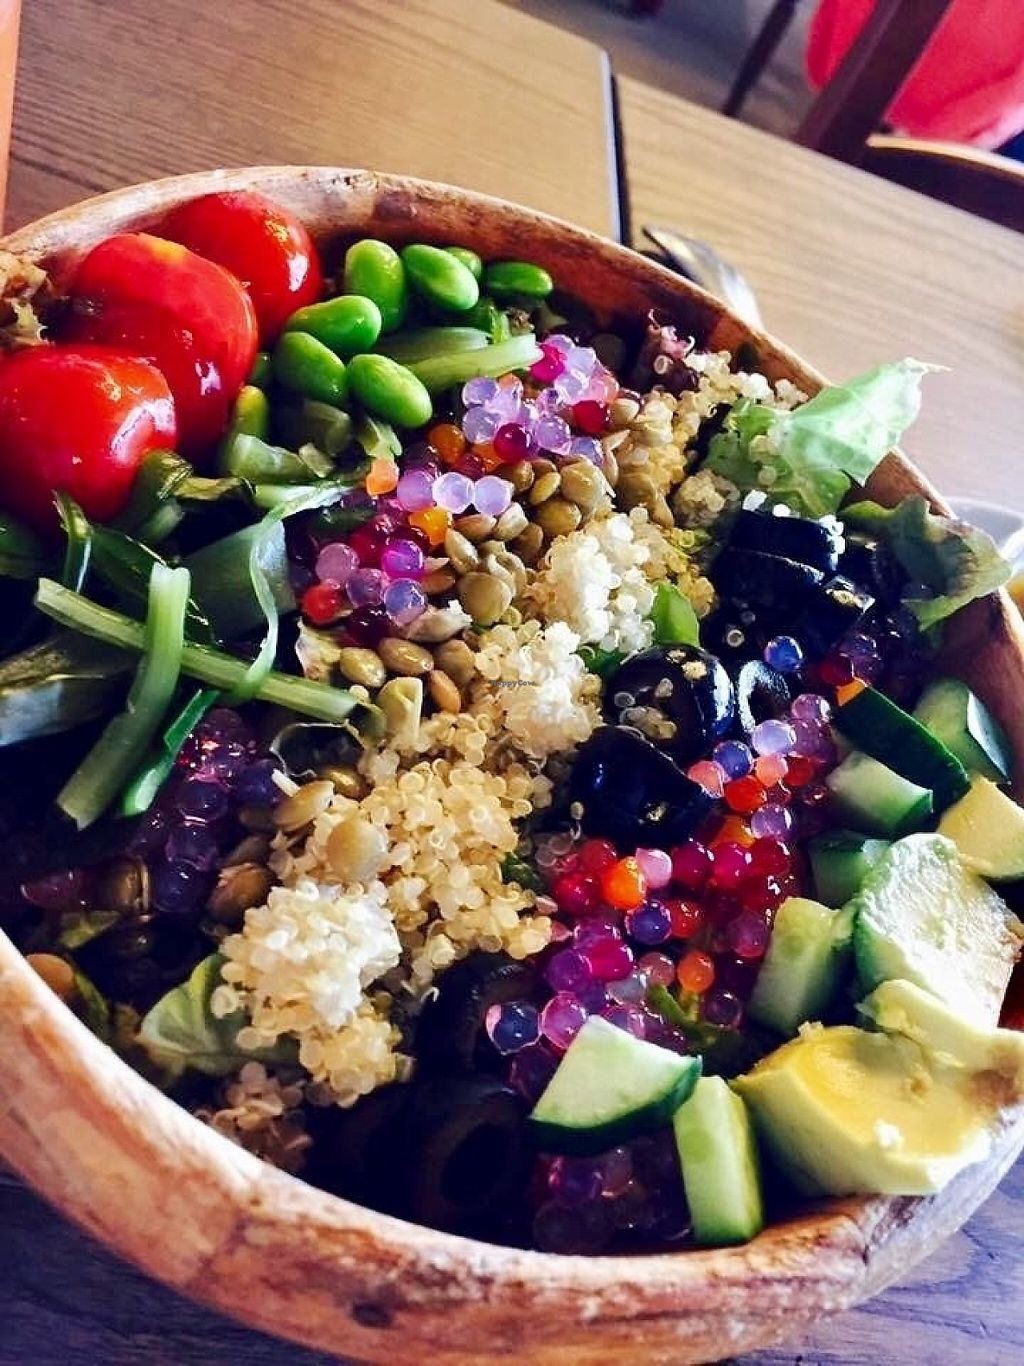 """Photo of Cafe La Boheme - Ginza  by <a href=""""/members/profile/paulkates"""">paulkates</a> <br/>Vegan tofu salad <br/> June 7, 2017  - <a href='/contact/abuse/image/93480/266524'>Report</a>"""